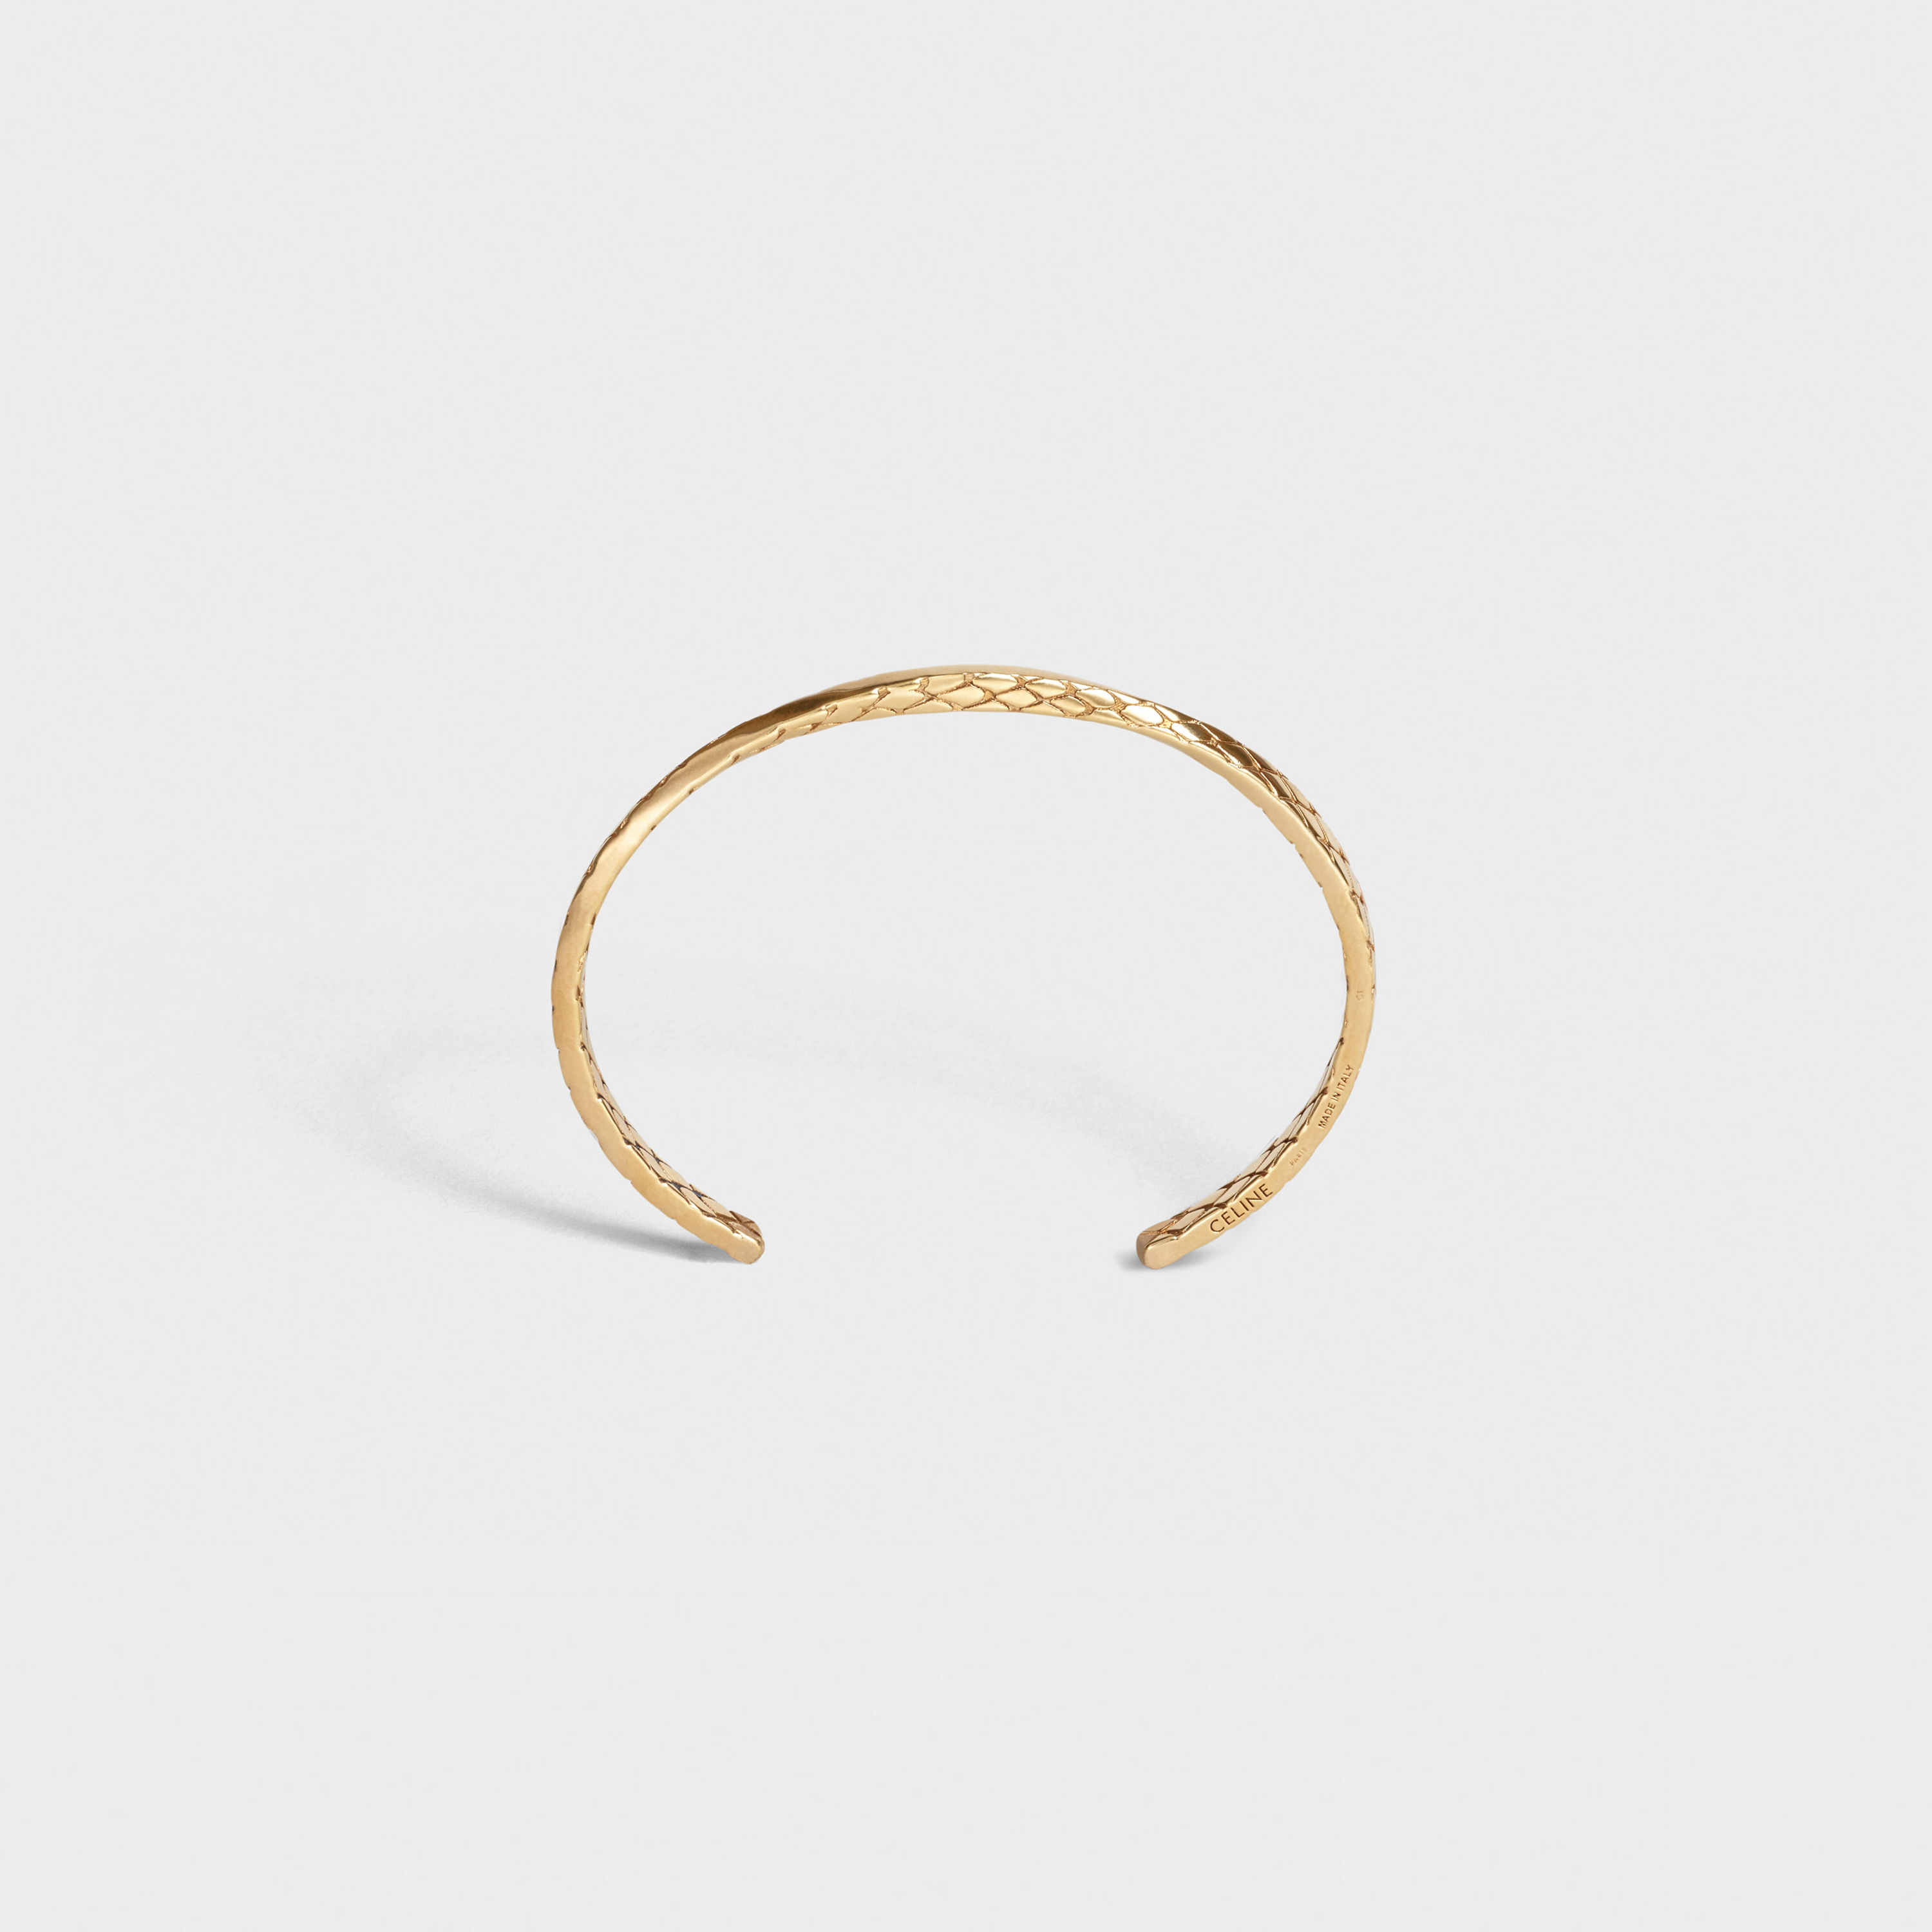 Celine Animals Twisted Bracelet in Brass with Vintage Gold finish | CELINE